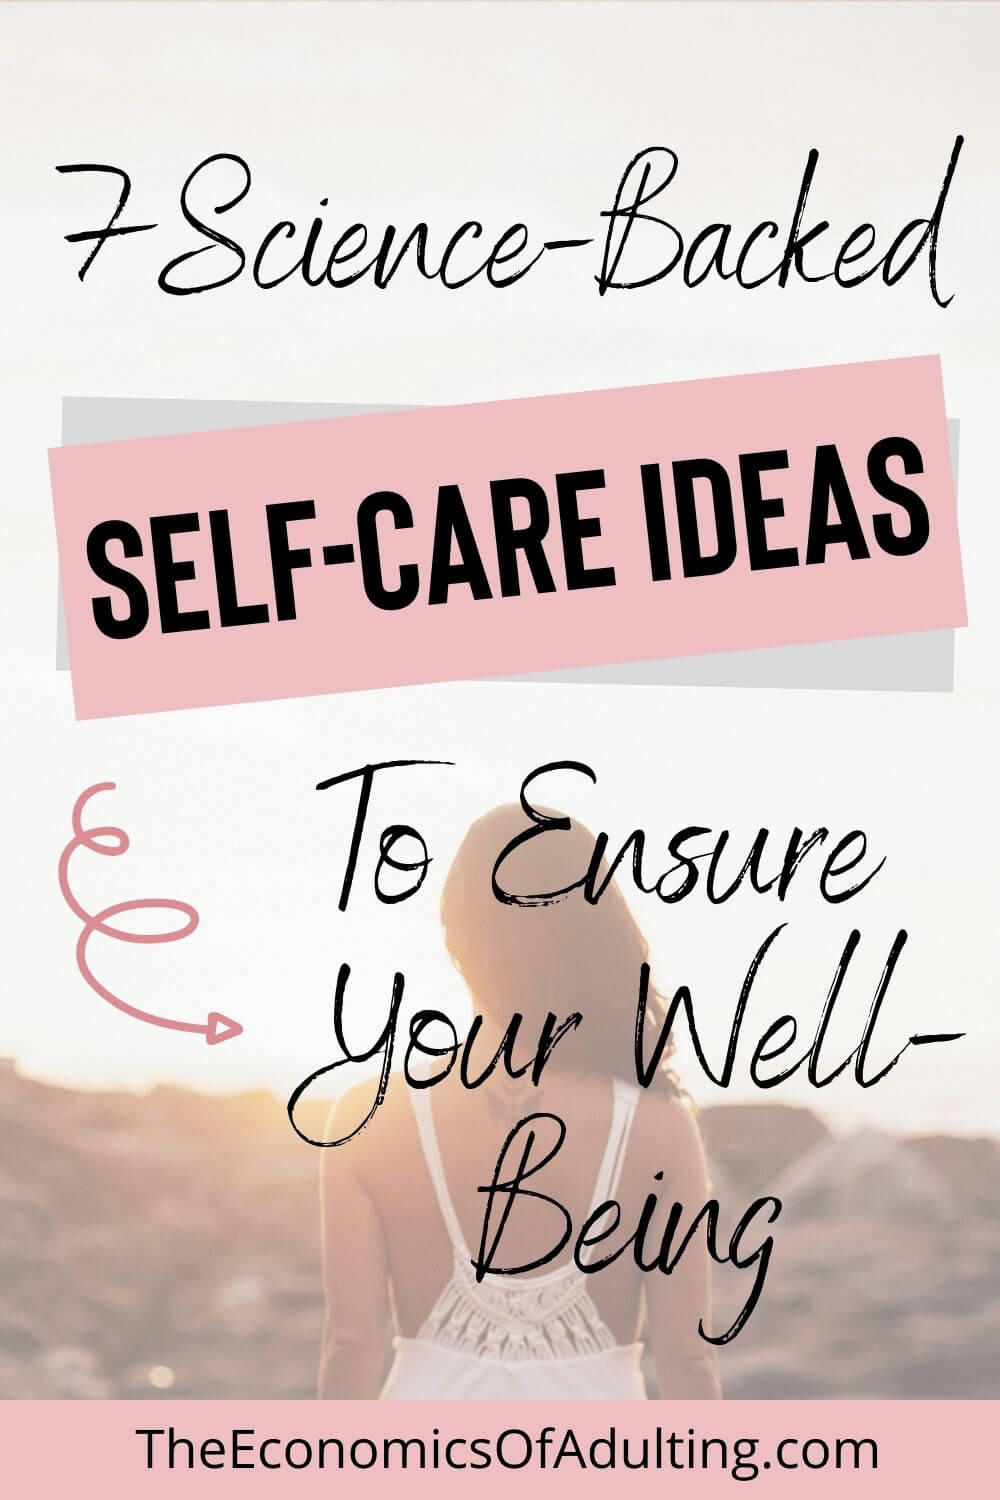 Pinterest pin with the heading '7 Science-Backed Self-Care Ideas To Ensure Your Well-Being'